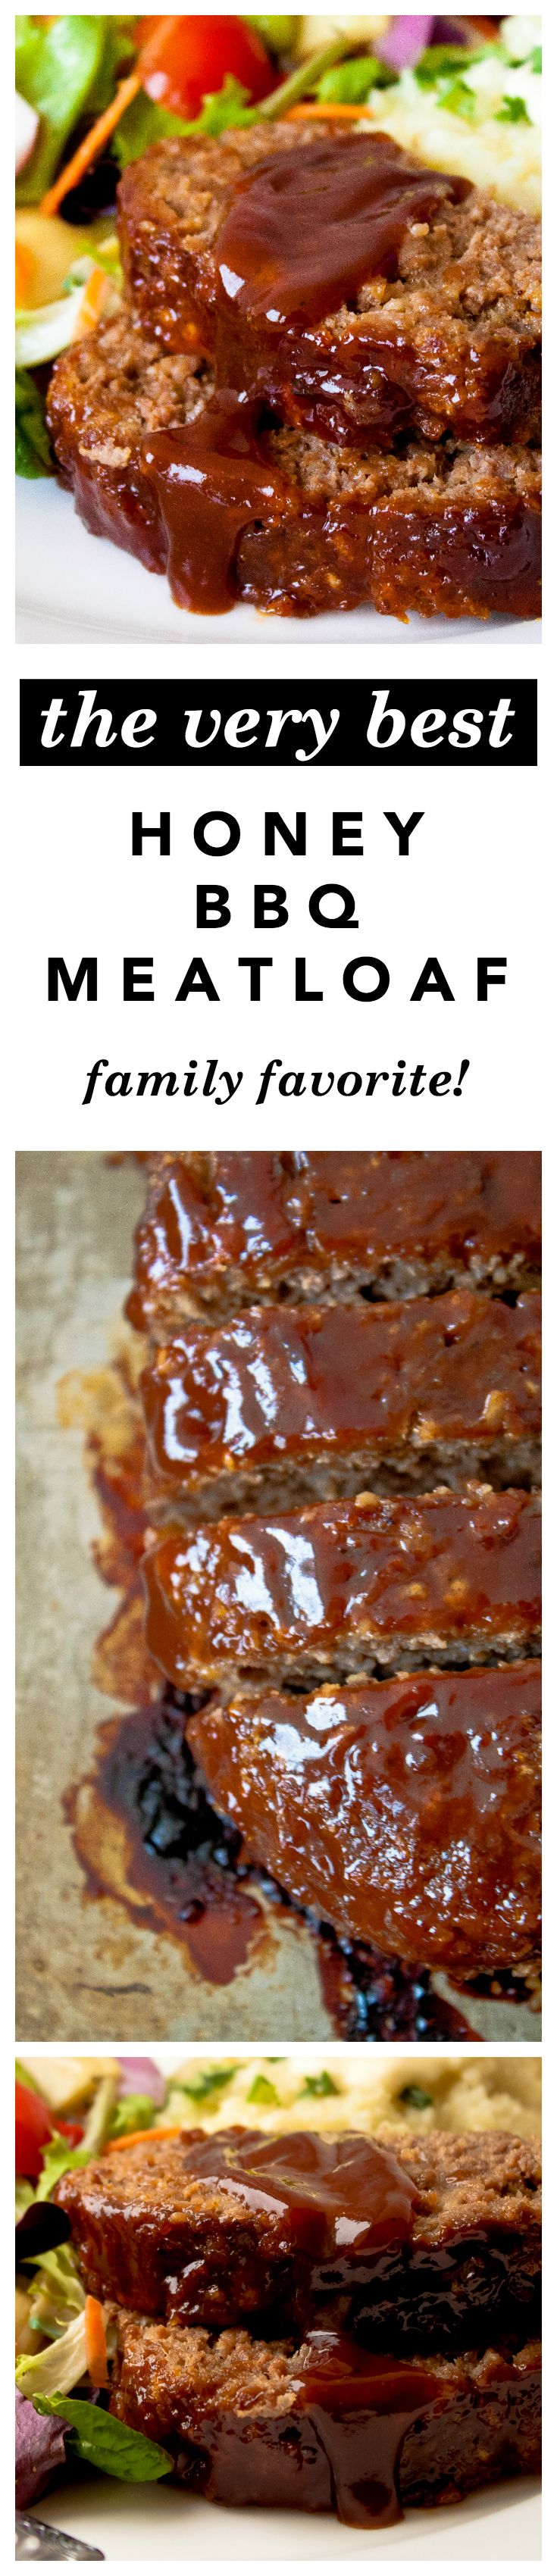 Honey Barbecue Meatloaf Recipe -  The best, moistest, most crowd-pleasing meatloaf EVER - made with honey for sweetness and bbq sauce for smokiness. Tried, true, and kid friendly!